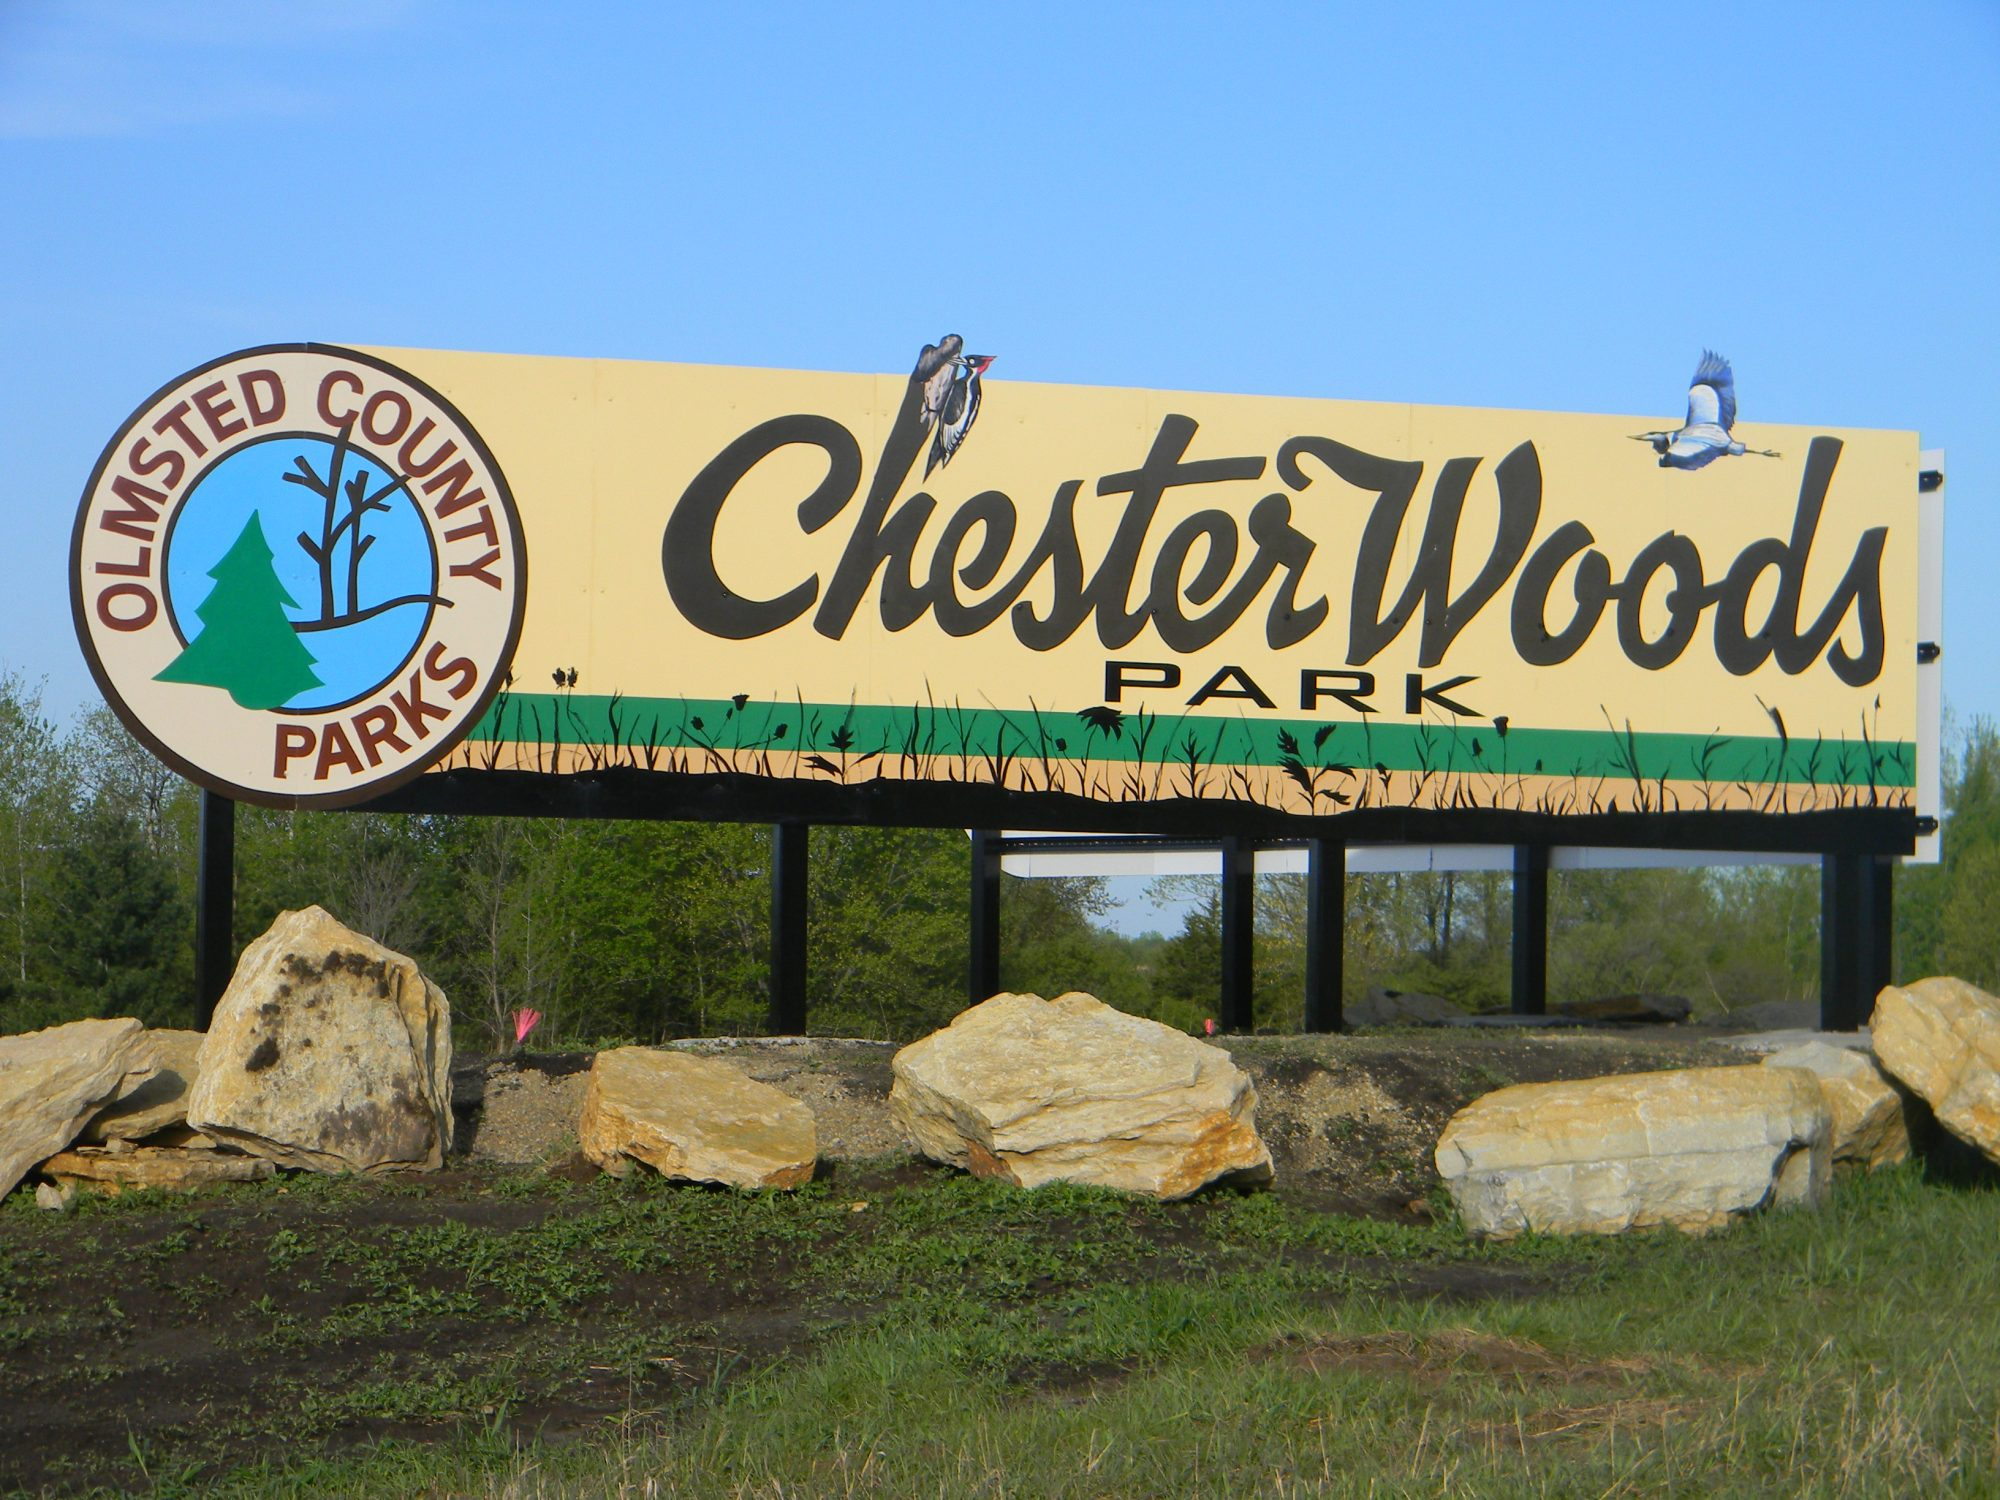 Chester Woods Park sign